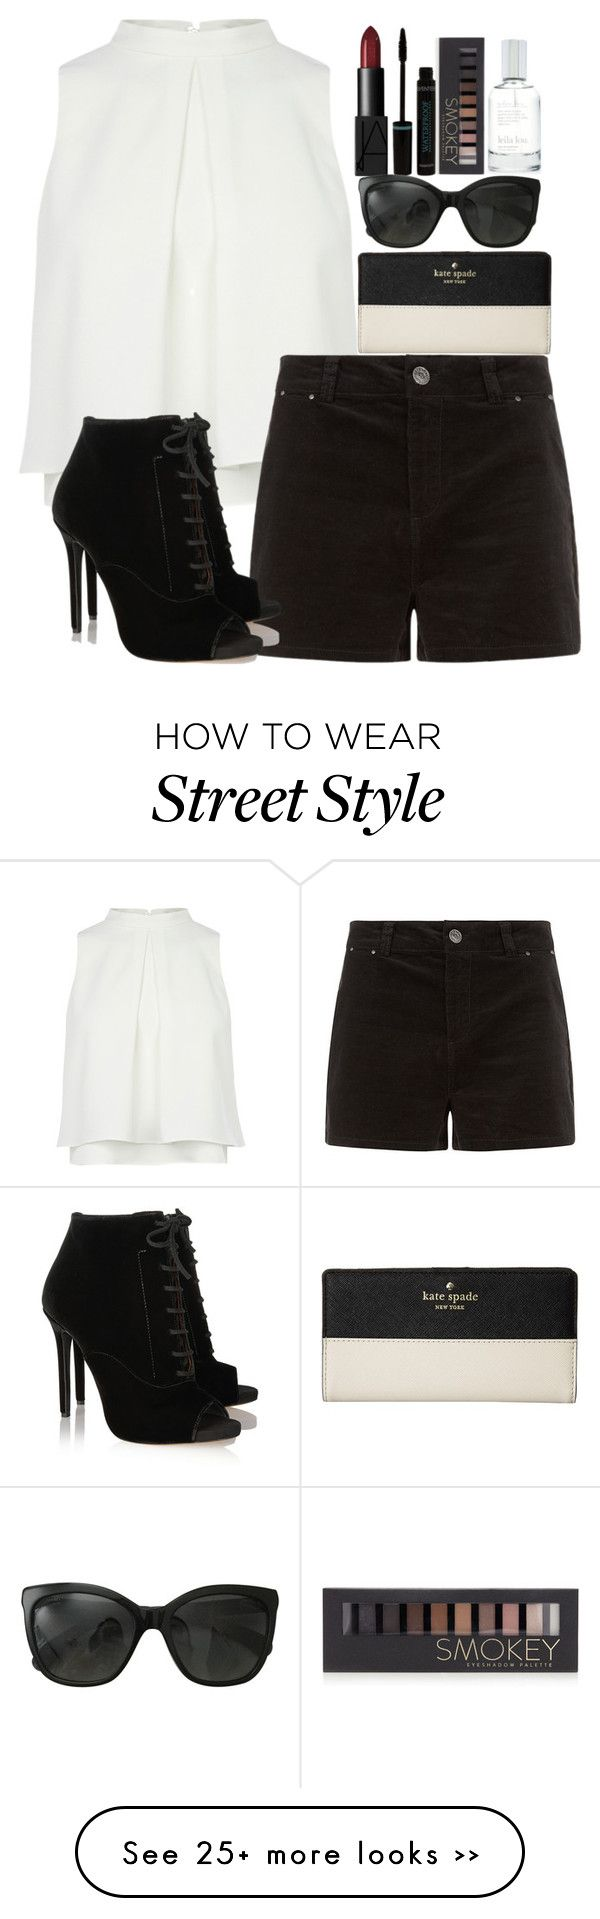 """""""Simple Street Style"""" by ecomedygirl16 on Polyvore featuring Tabitha Simmons, NARS Cosmetics, Forever 21, Splendid, Chanel and Kate Spade"""